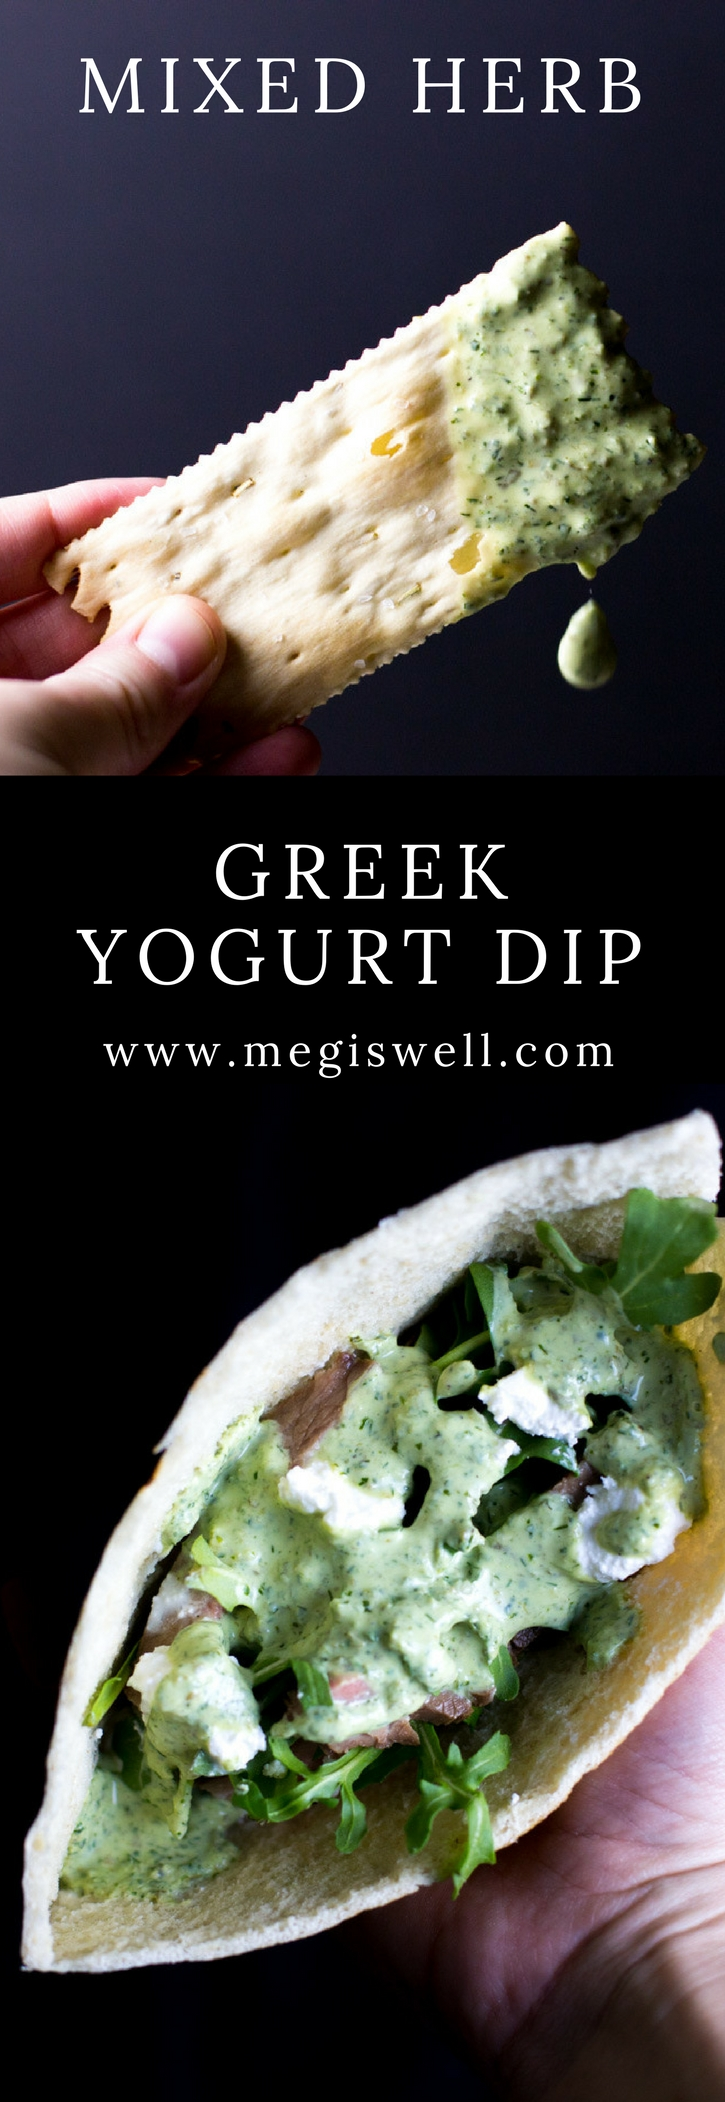 This Mixed Herb Greek Yogurt Dip combines basil, mint, and dill with lemon juice, capers, and yogurt. Use as a dip or drizzle it on salads, meat, or fish. | www.megiswell.com